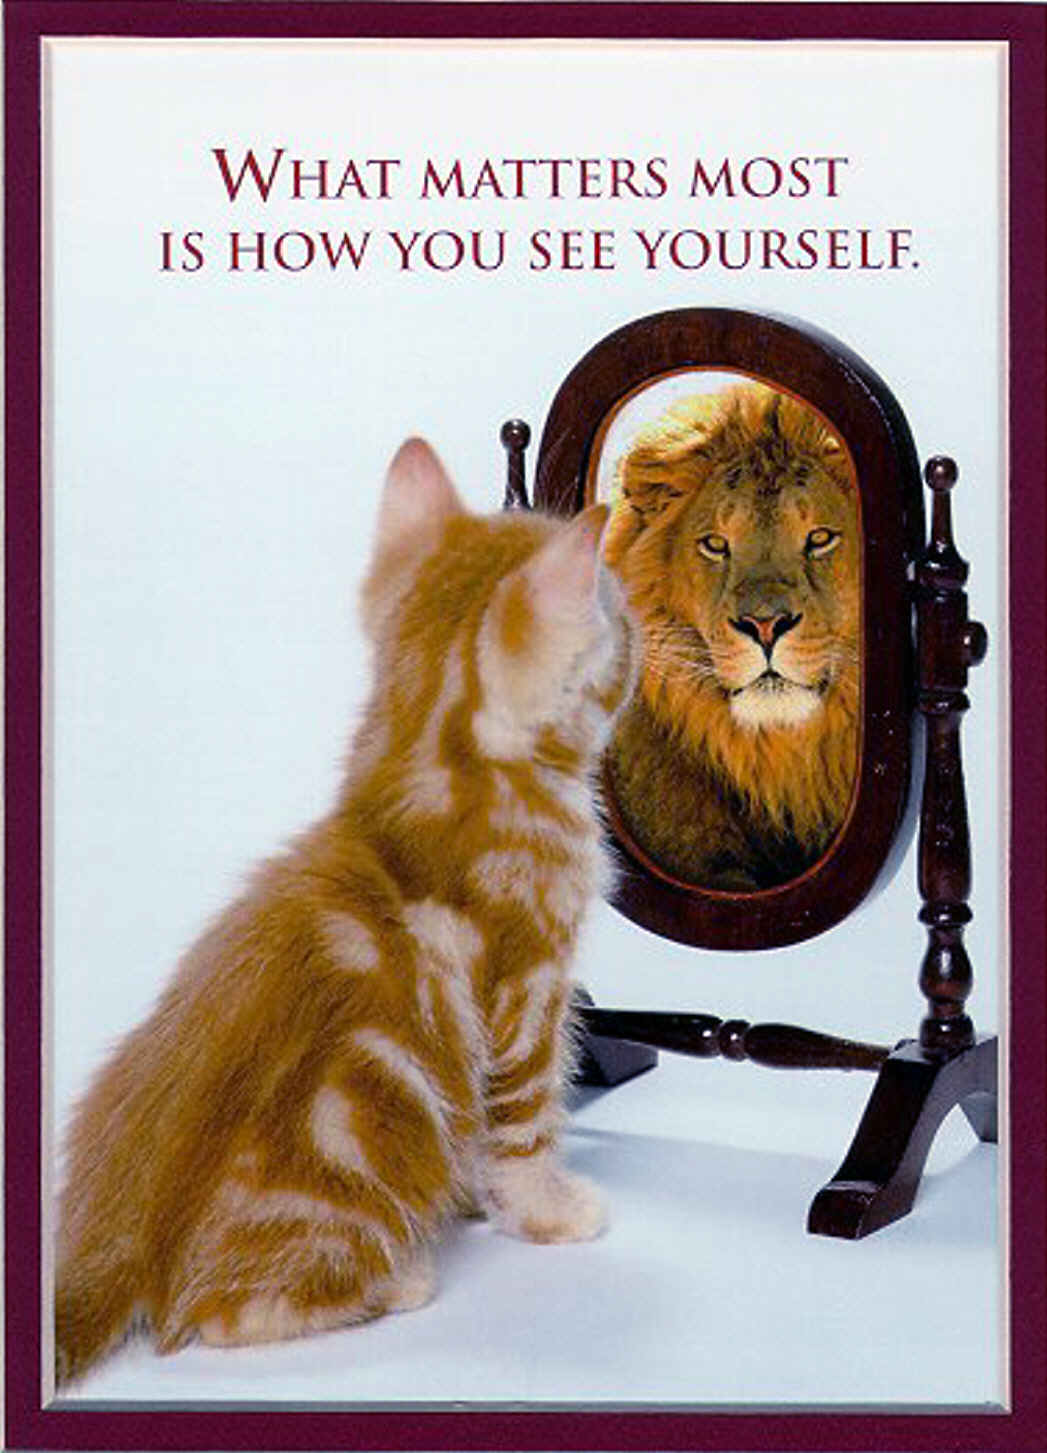 mirror_cat_as_lion1.jpg